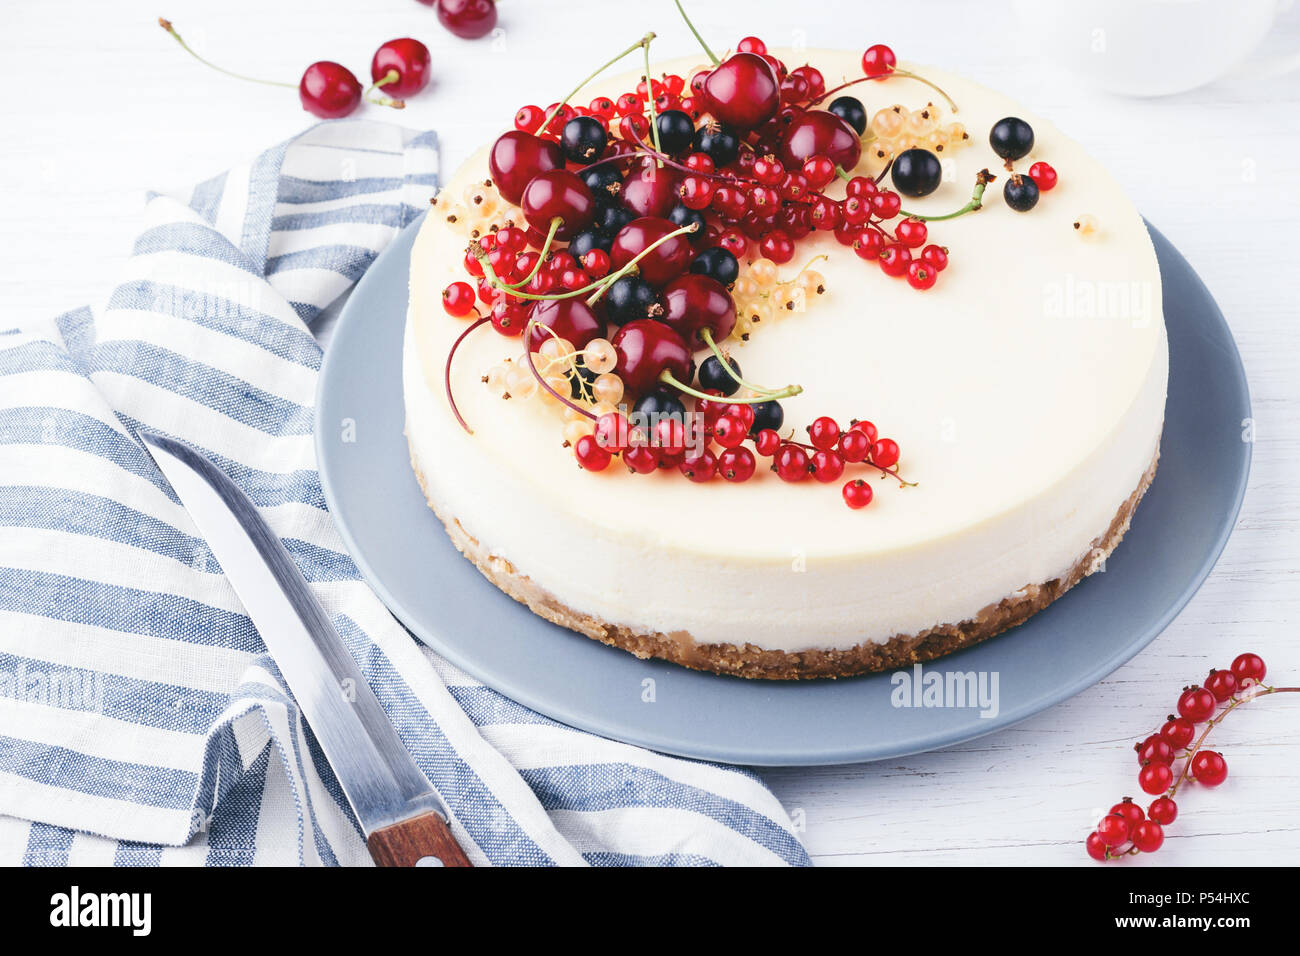 New York cheese cake with berries on white wooden table. Angle view. Stock Photo